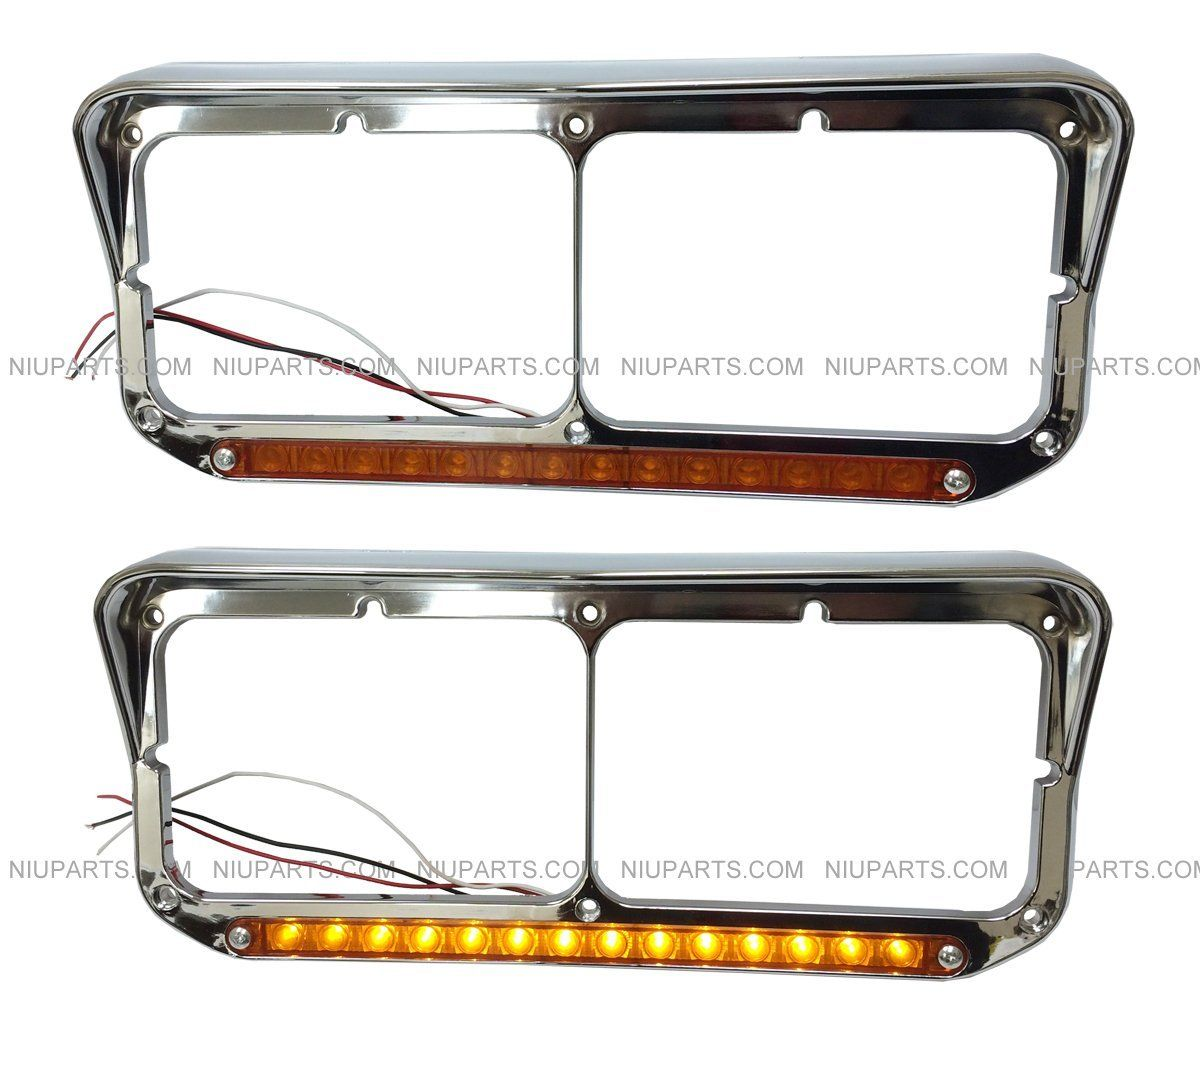 Headlight Bezel With 12 Amber Amber Led Light Strip Chrome Drive And Passenger Side Fit Kenworth T400 T60 Amber Led Lights Led Light Strips Strip Lighting